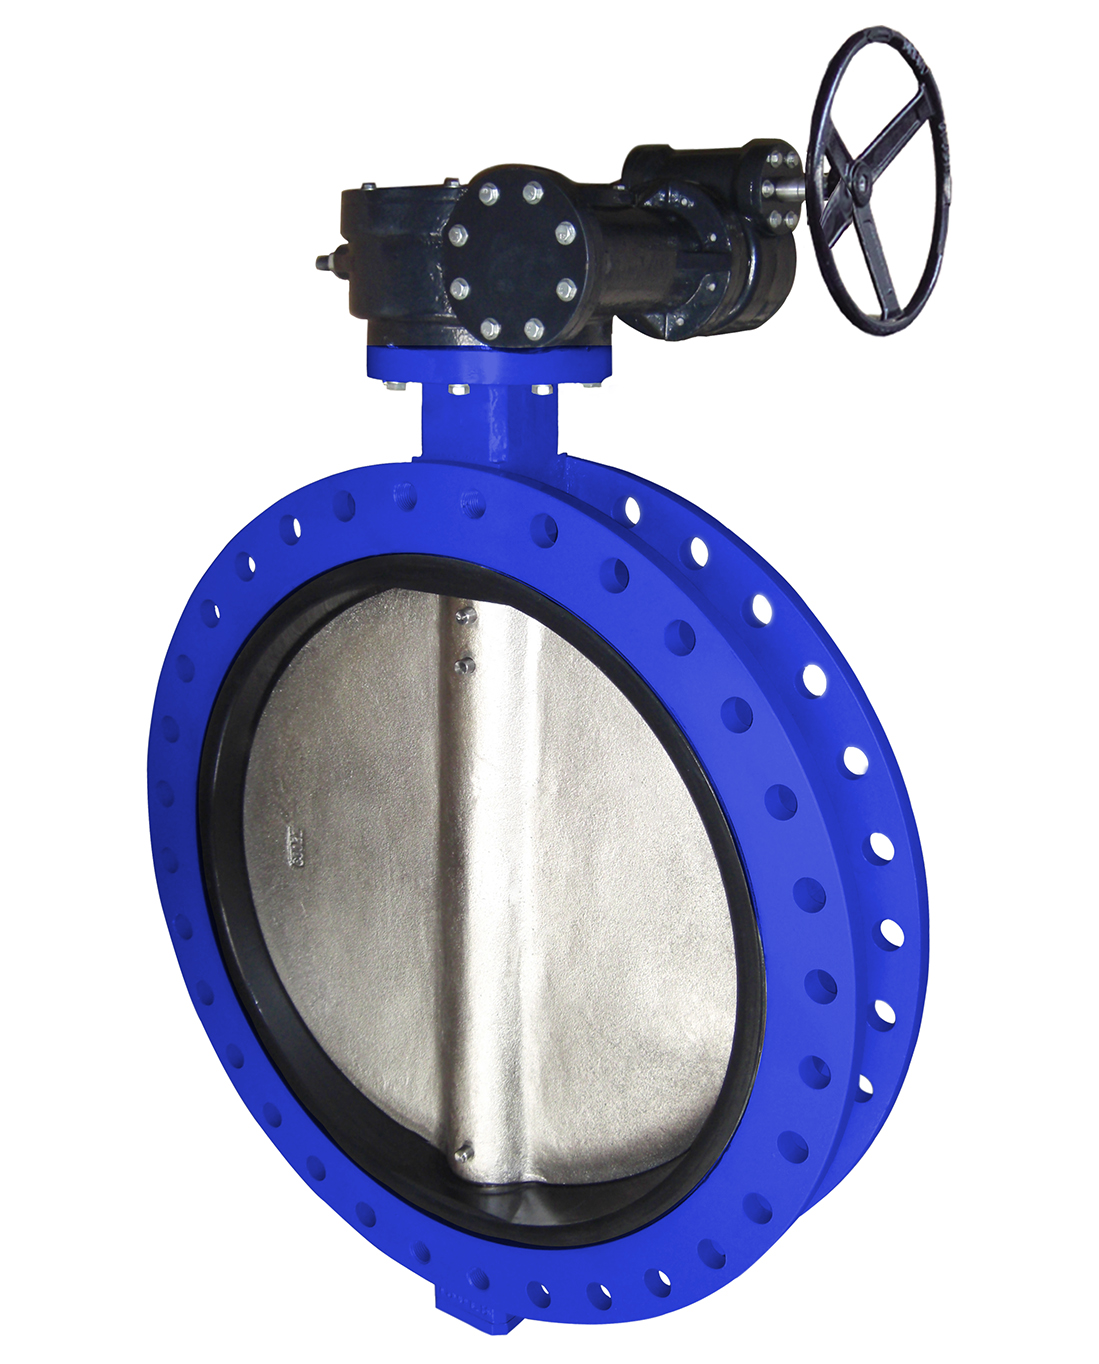 Double flanges type butterfly valve PN10 – ductile iron body – ductile iron disc – gearbox operator